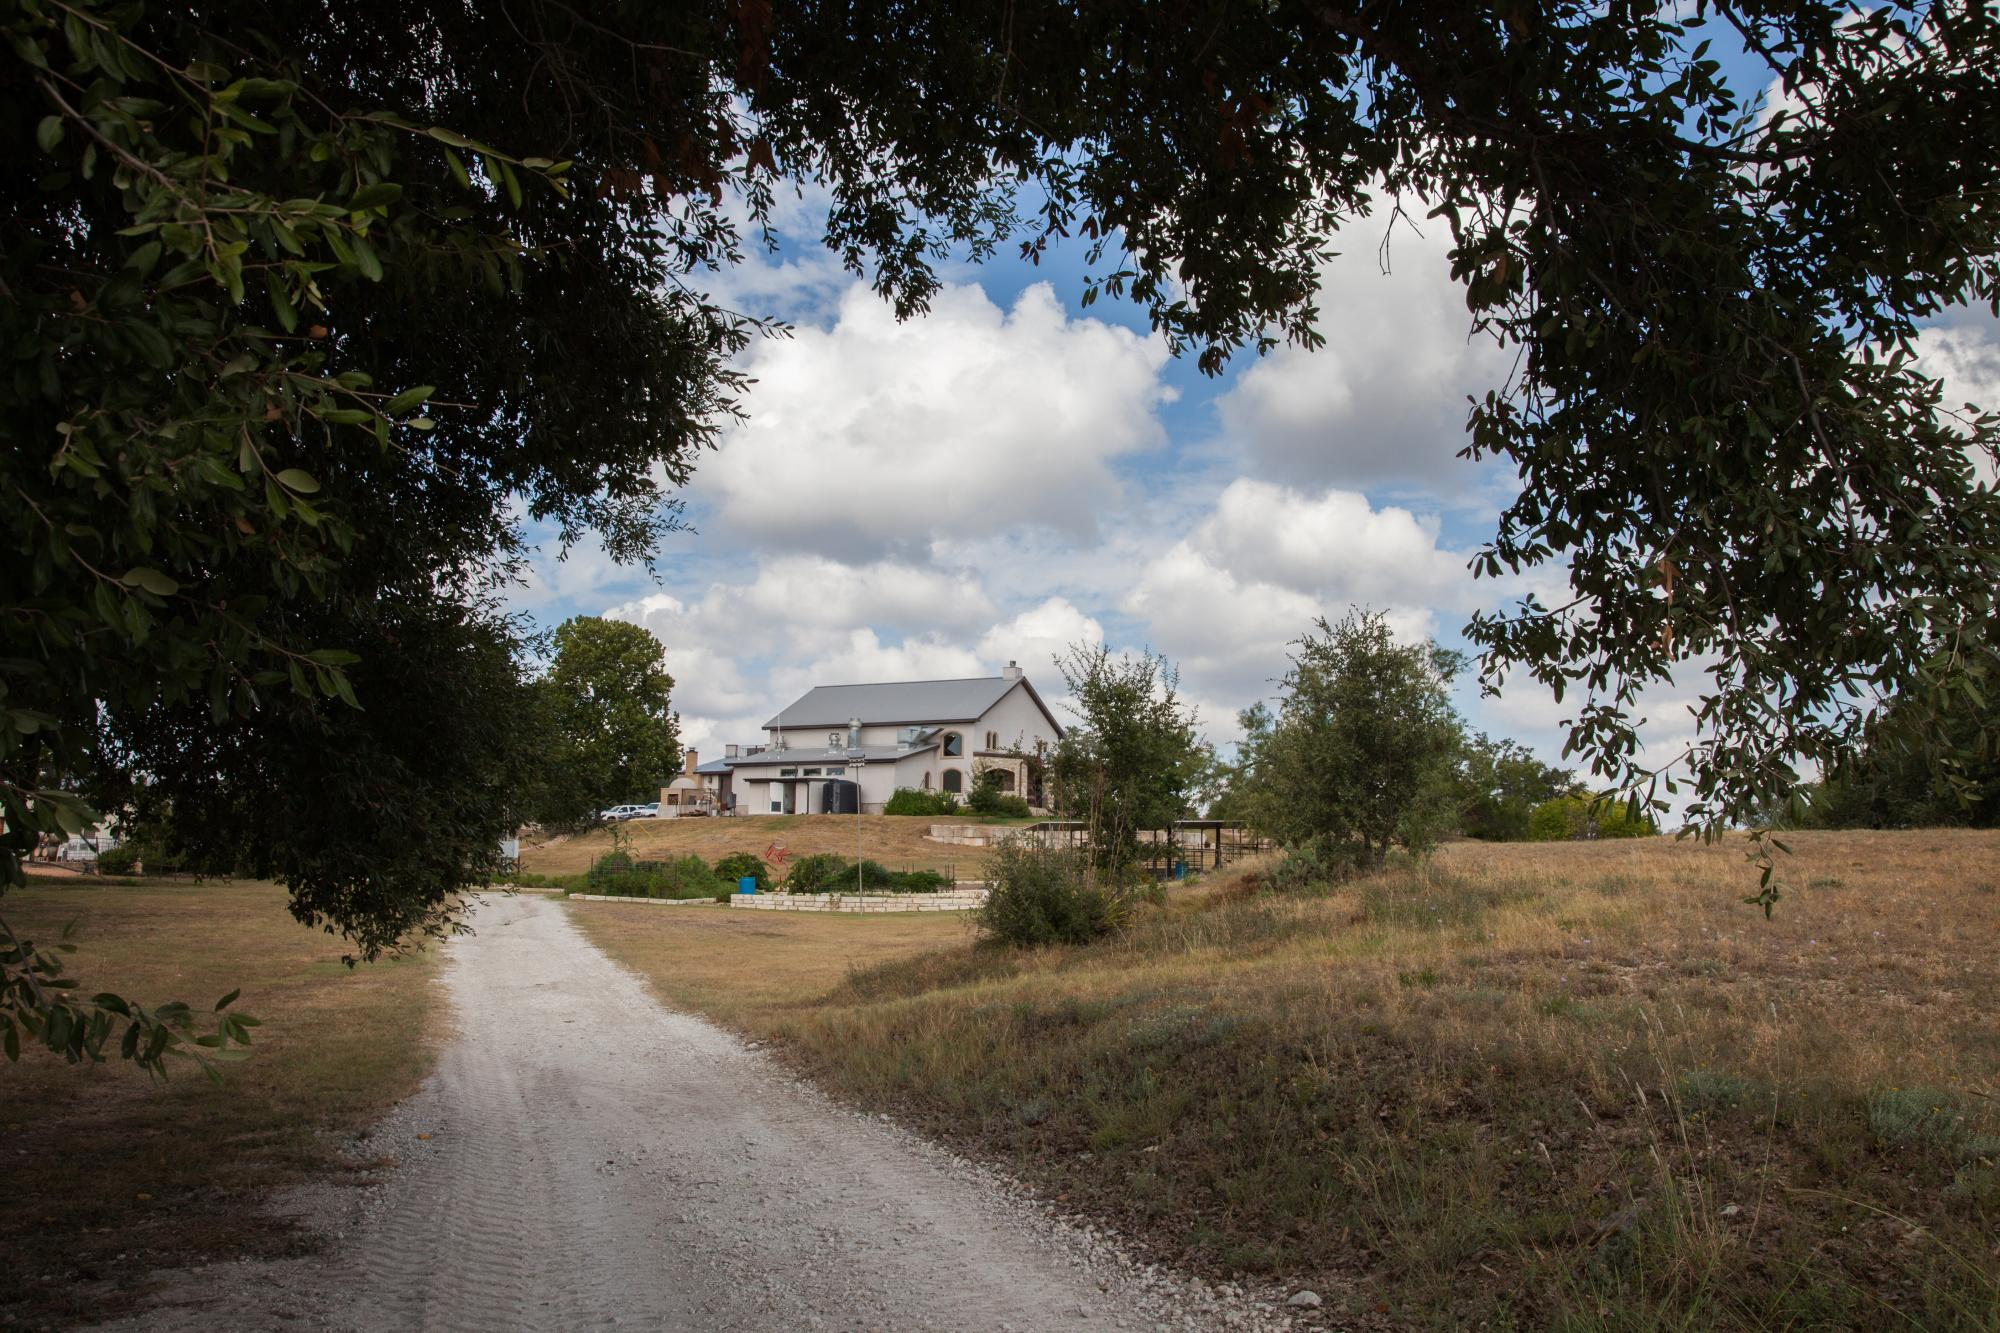 Flat_Creek_Property_1_-_Peary_Photography.jpg